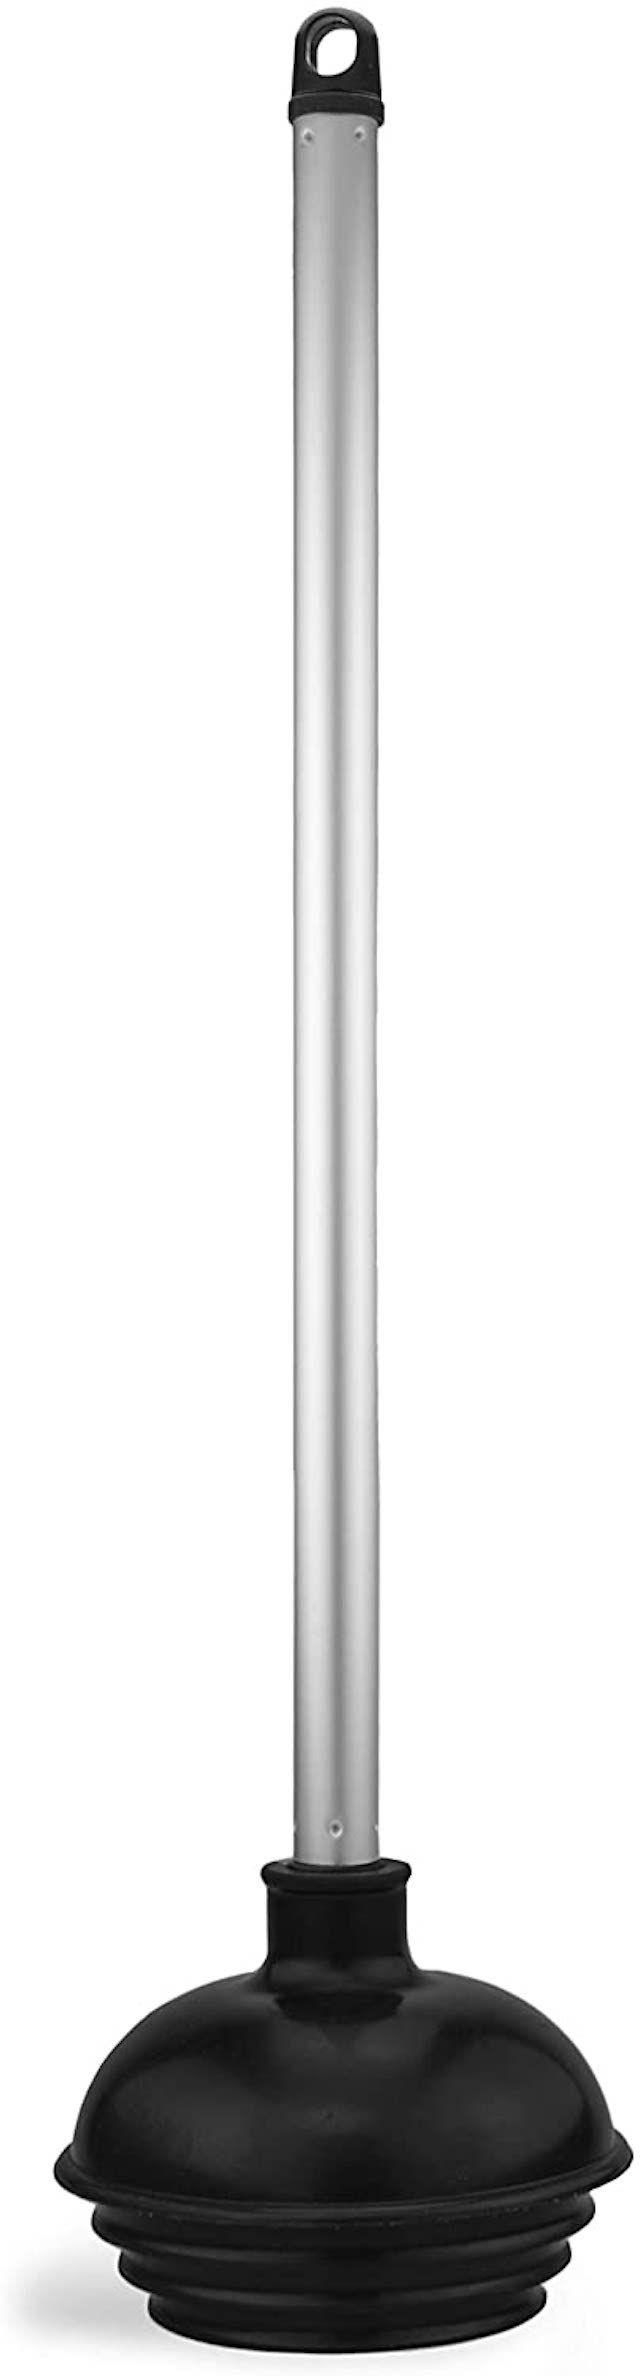 Heavy-Duty All-Angle Toilet Plunger